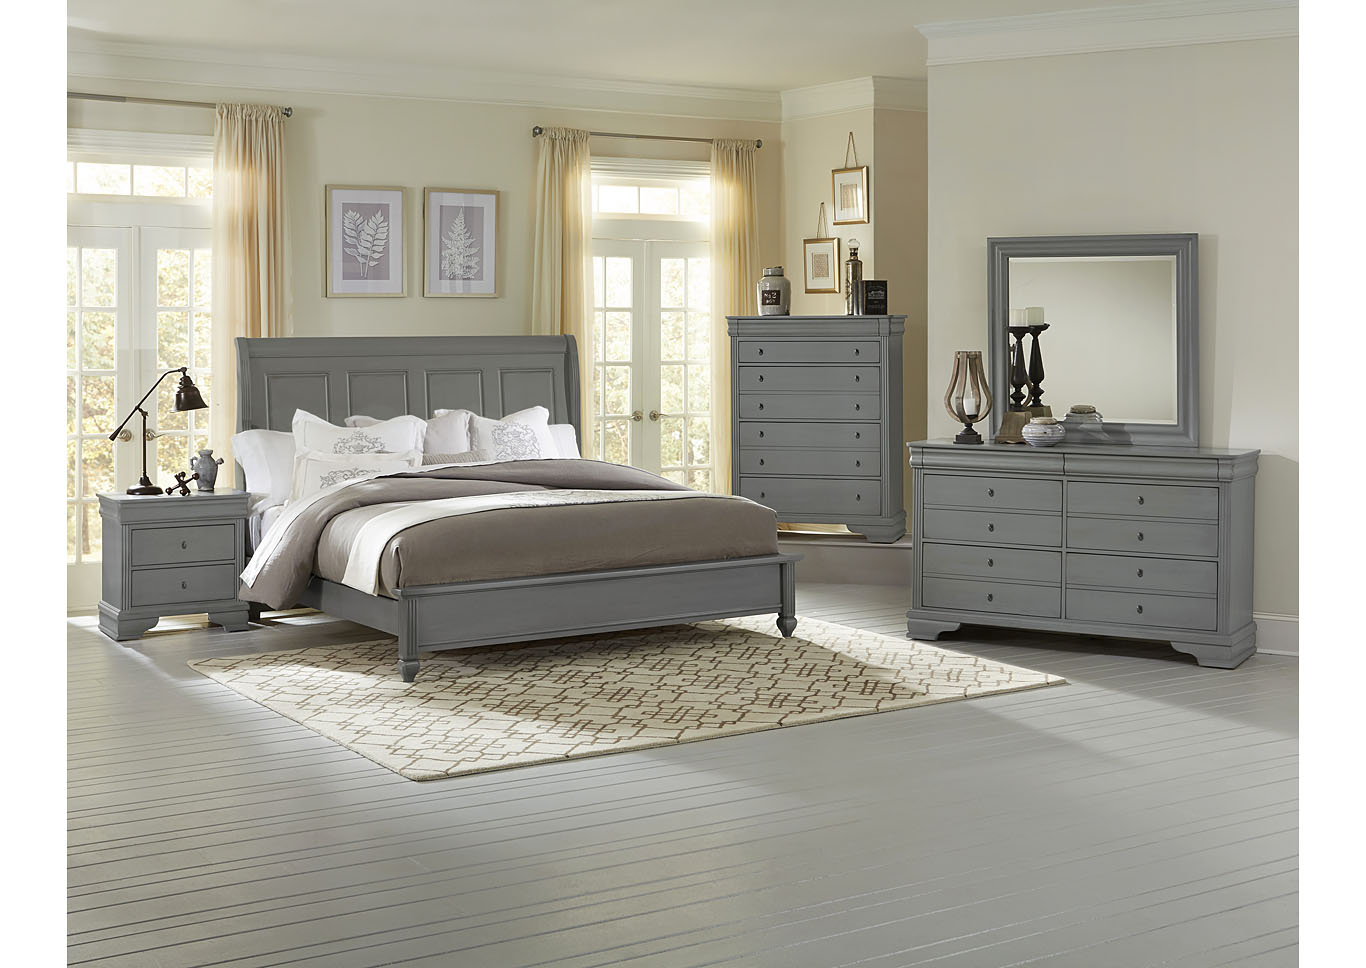 French Market Zinc Queen Sleigh Bed w/ Dresser, Mirror and Drawer Chest,Vaughan-Bassett